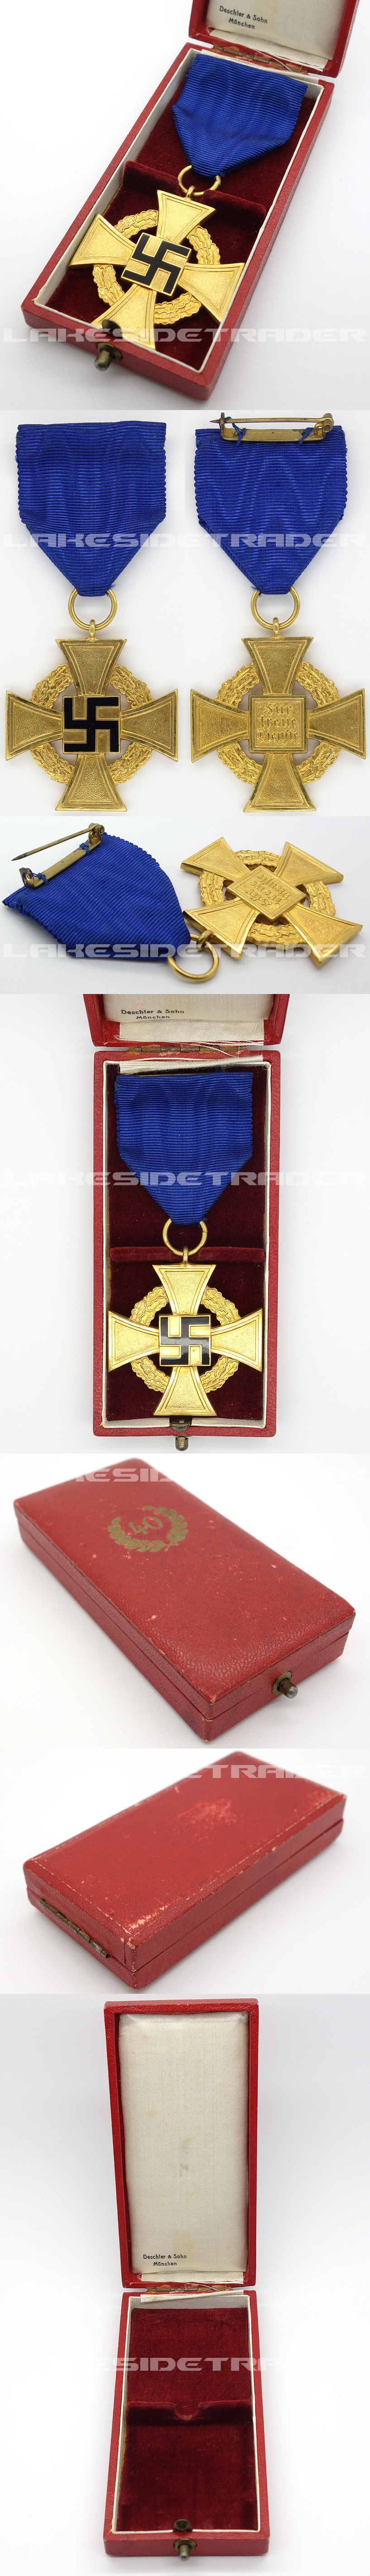 Cased 40 Year Faithful Service Cross